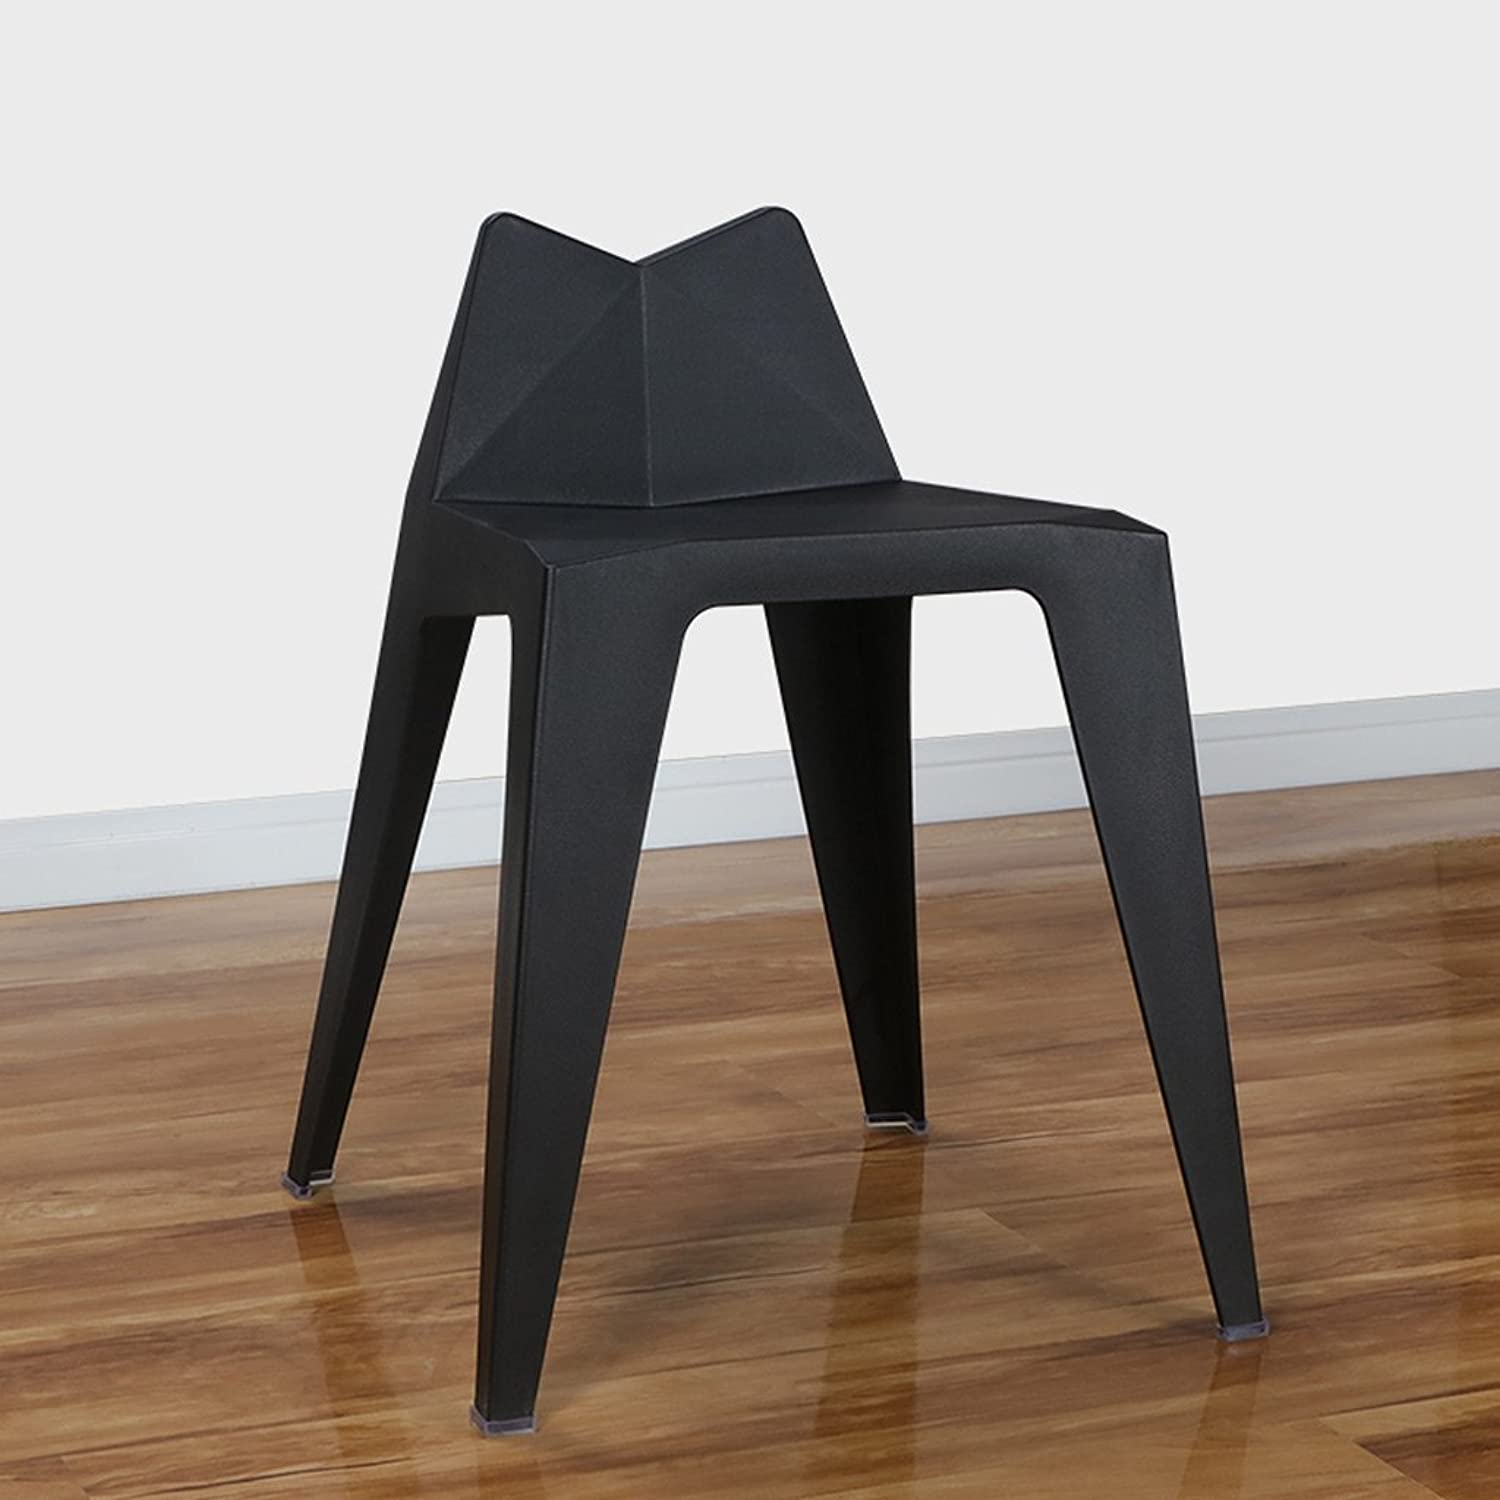 Simple Backrest Stools Restaurants Tea Shops Leisure Chairs Fashionable Personalized Thick Plastic Green bluee Red Black Yellow (color   Black)